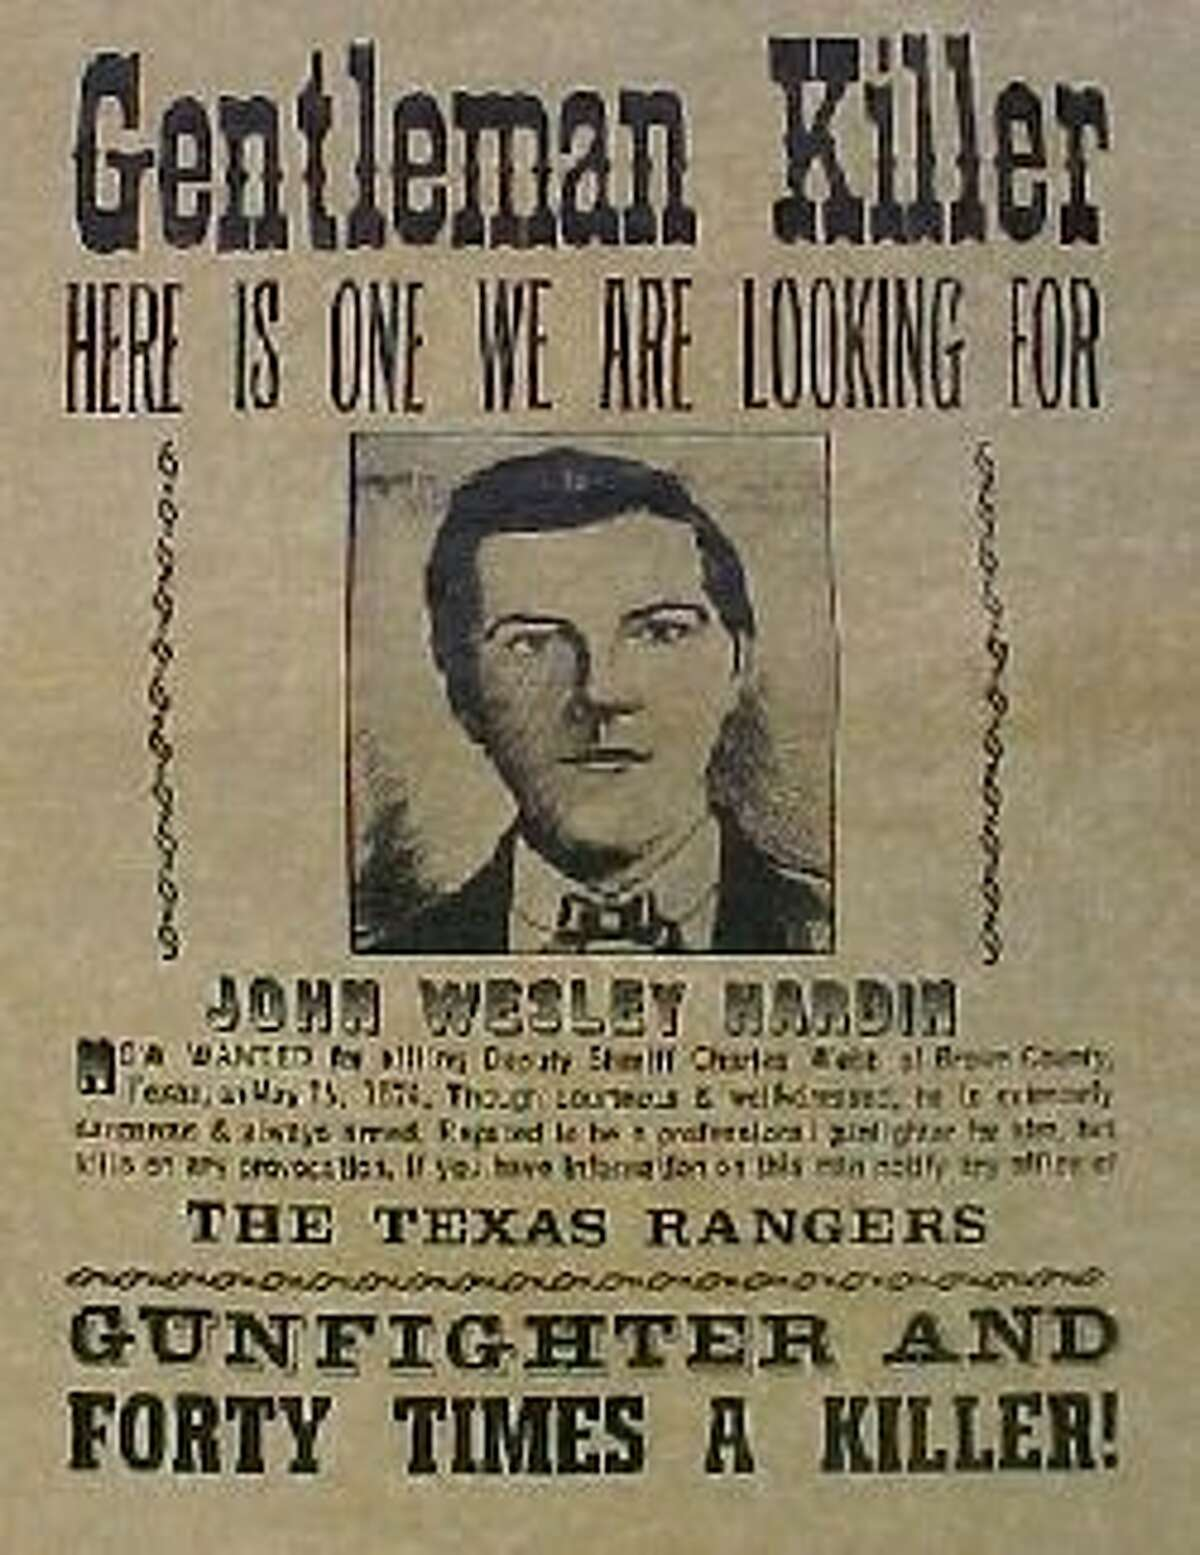 John Wesley Hardin Born on May 26, 1853, in Bonham, Texas, Hardin killed his first victim at the age of 15. He fell into a life of gambling and killing by 1869 when he was 16. In 1877, he was captured by the Texas Rangers and lodged in the Austin jail. He was tried for the murder of Charles Webb in 1877 in Comanche County, where he was sentenced to prison for 15 years. Hardin started a law practice after his release but eventually fell back into a life of crime. Hardin was shot in the back of the head and died on Aug. 19, 1895, while throwing dice at the Acme Salon.Source: The University of Texas at Austin library See more notorious outlaws and lawmen with Texas ties ahead.